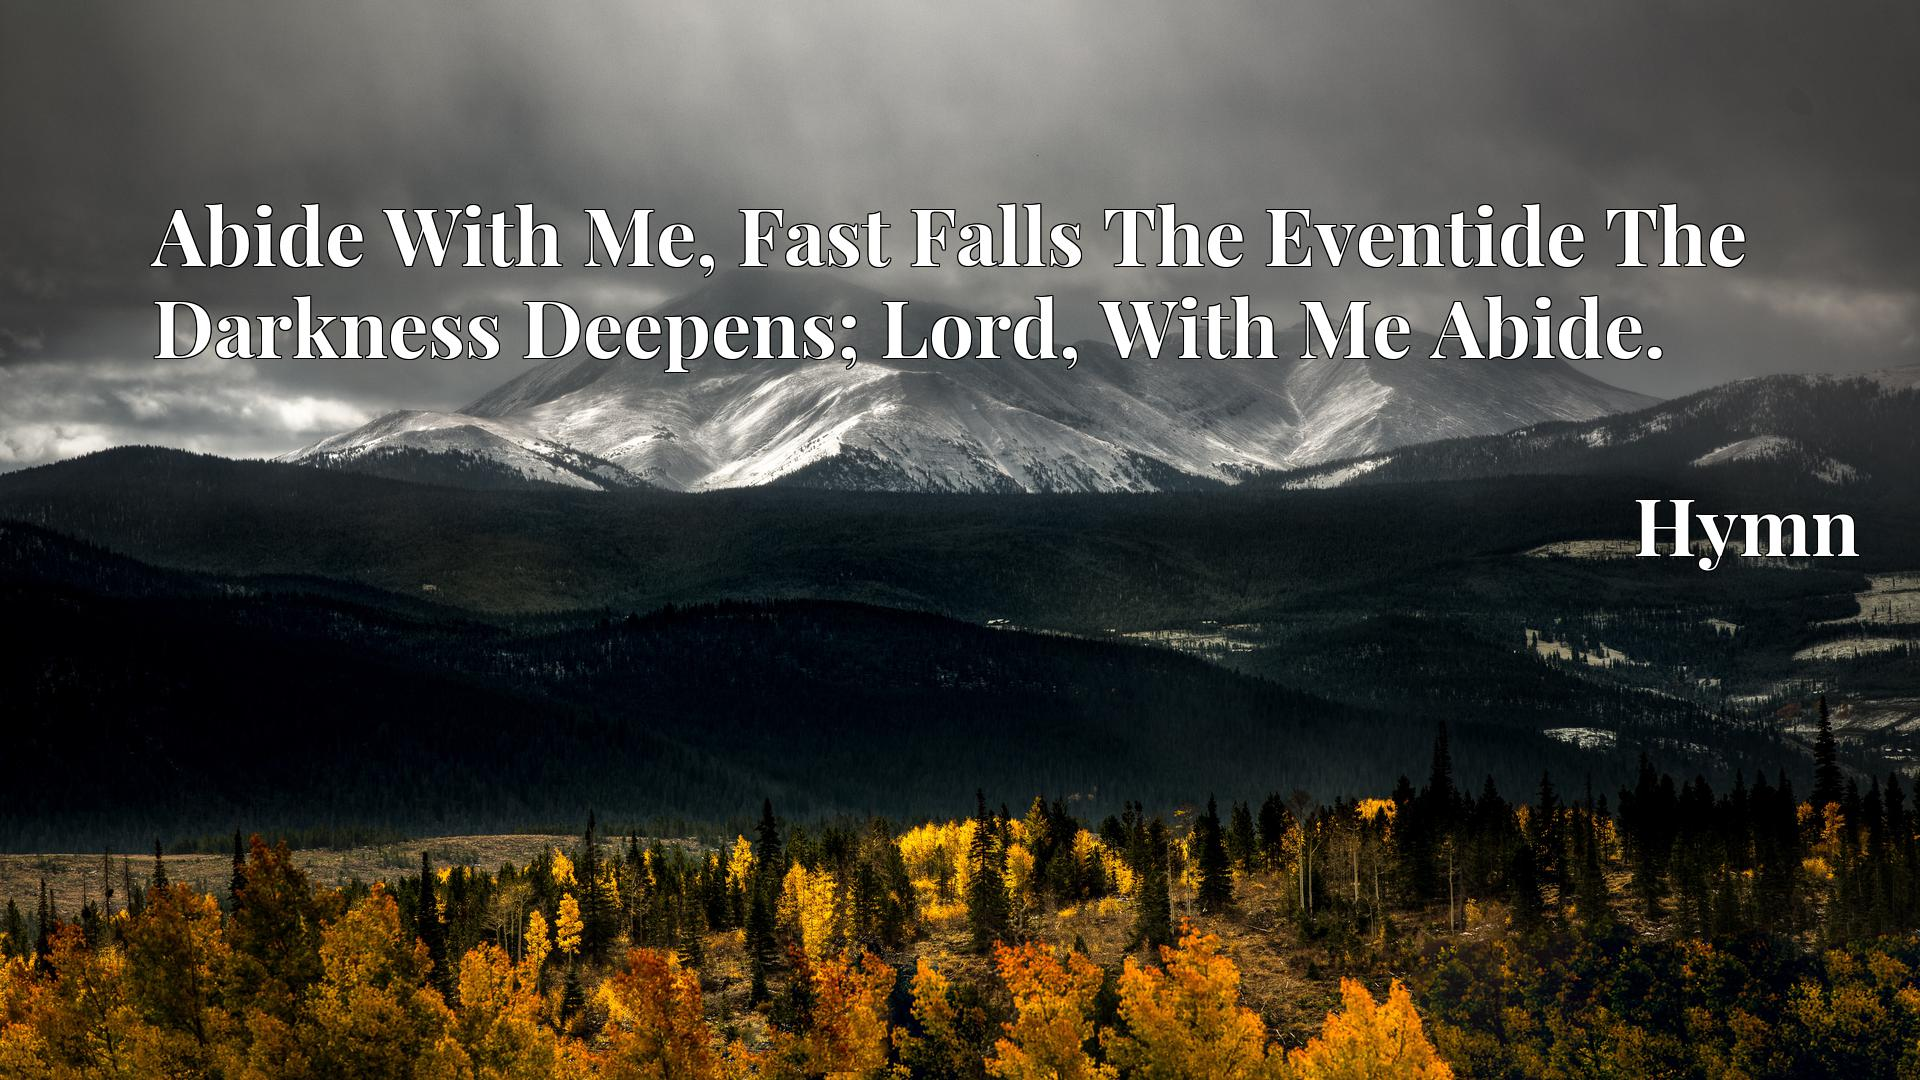 Abide With Me, Fast Falls The Eventide The Darkness Deepens; Lord, With Me Abide. - Hymn